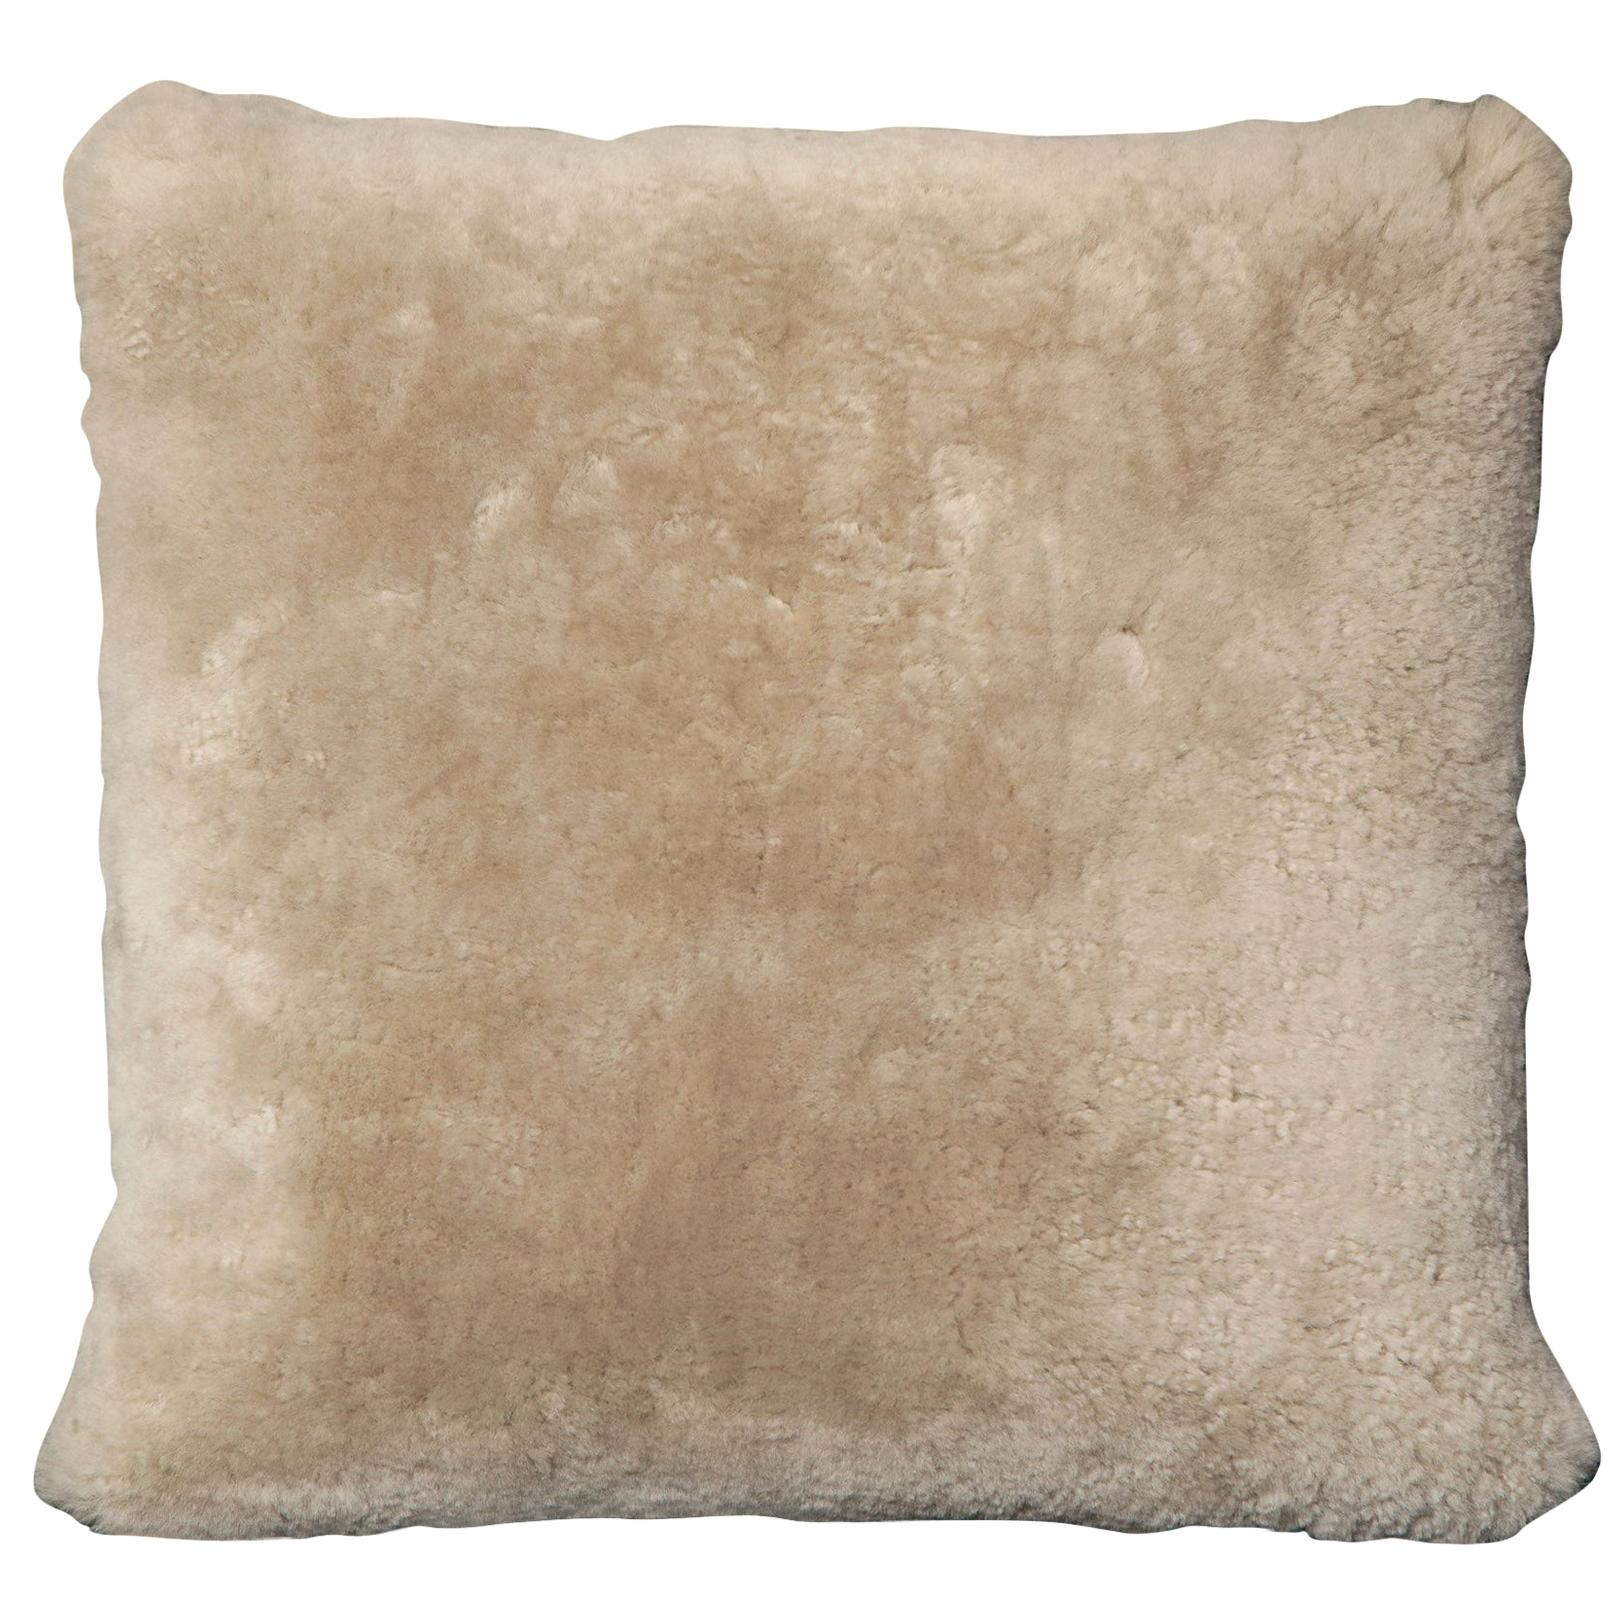 Custom Genuine Shearling Pillow in Taupe Color